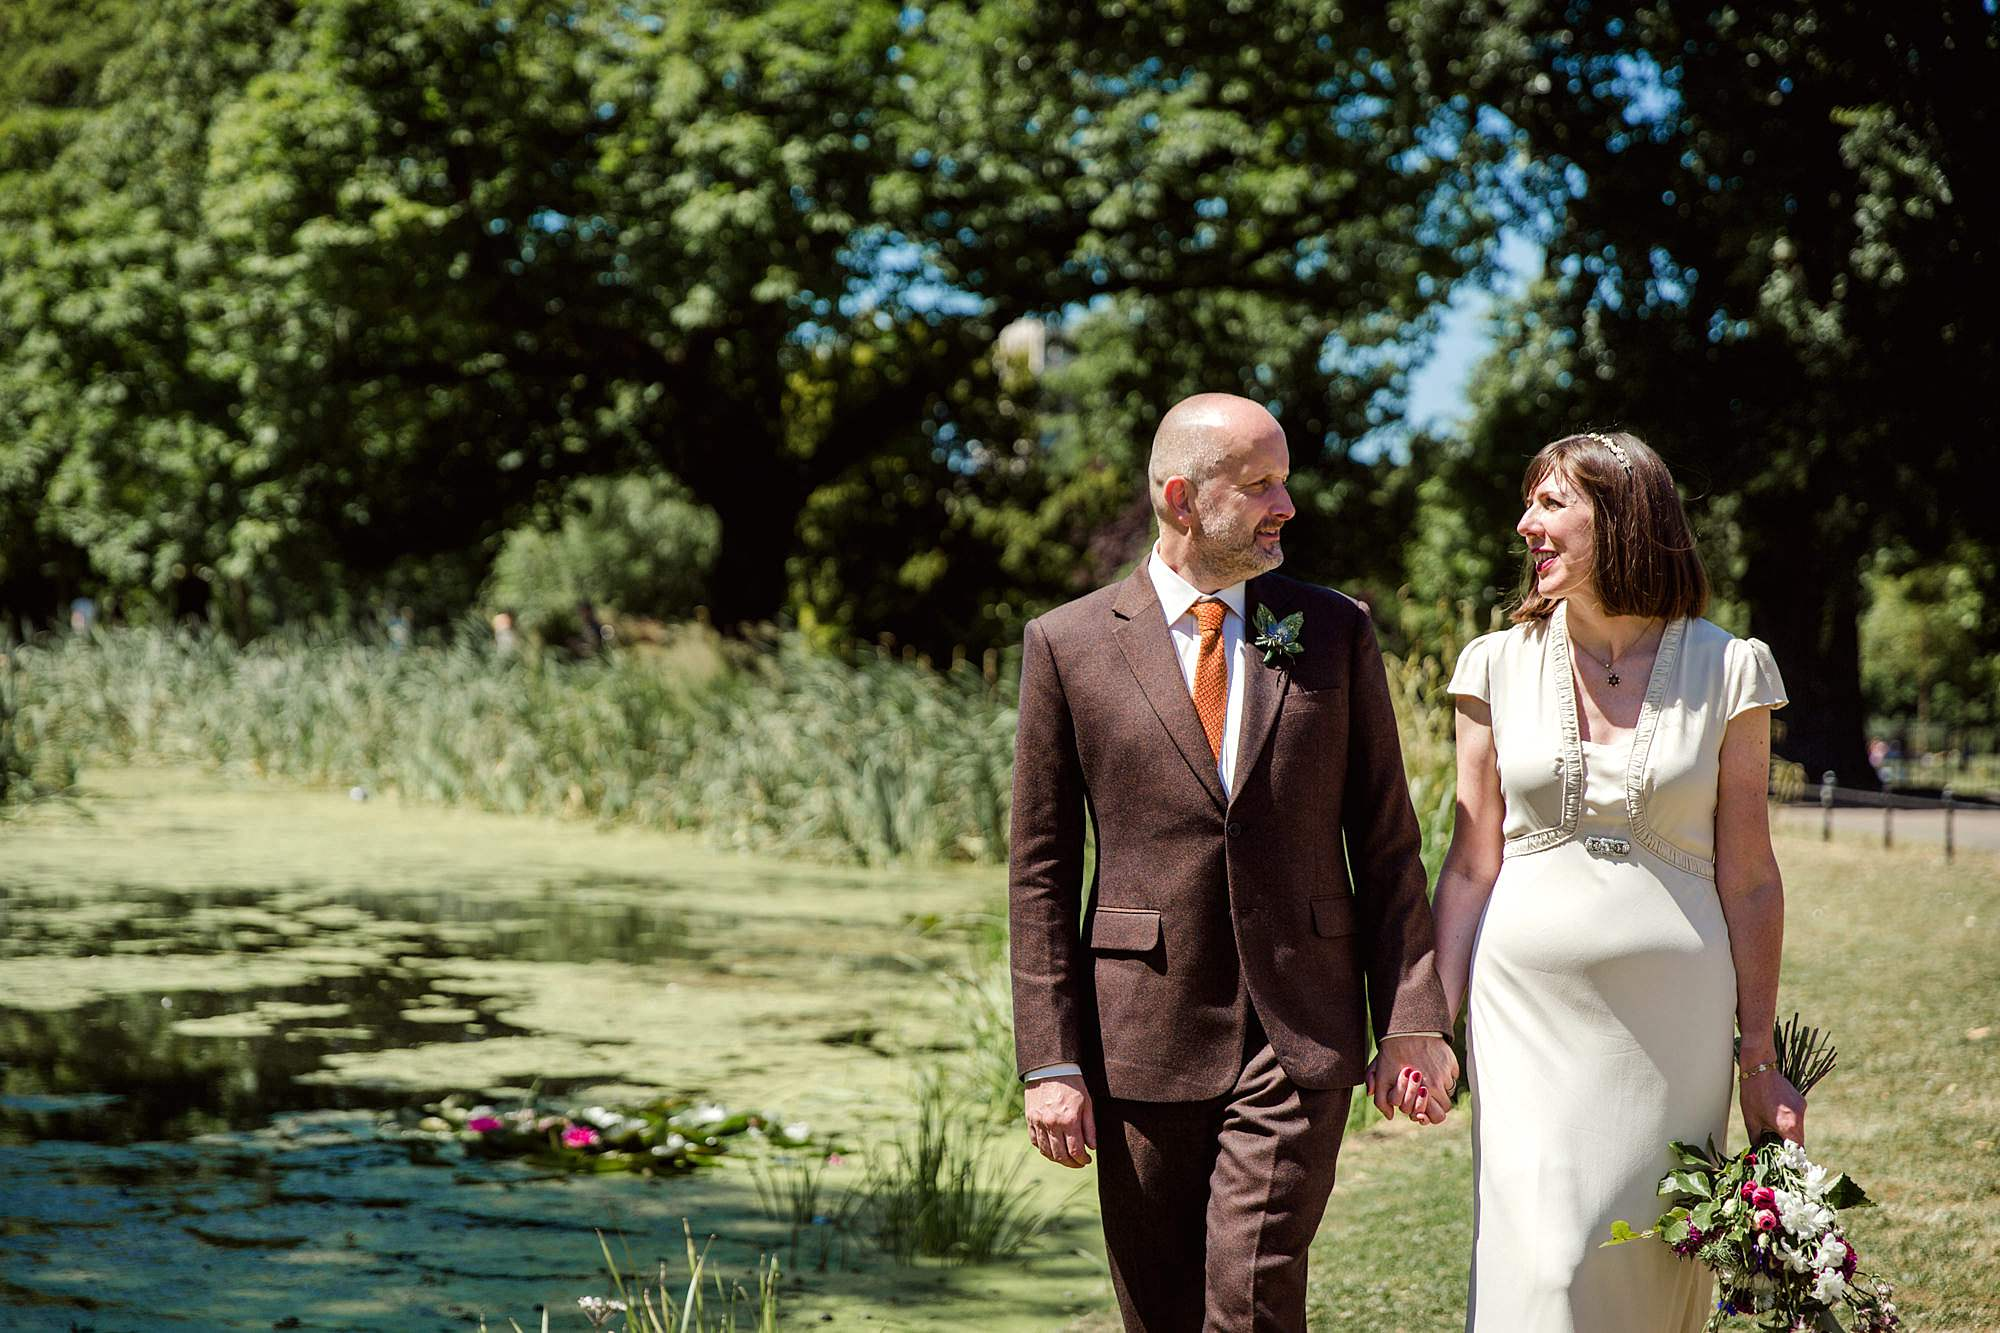 Clapton Country Club wedding photography bride and groom walking